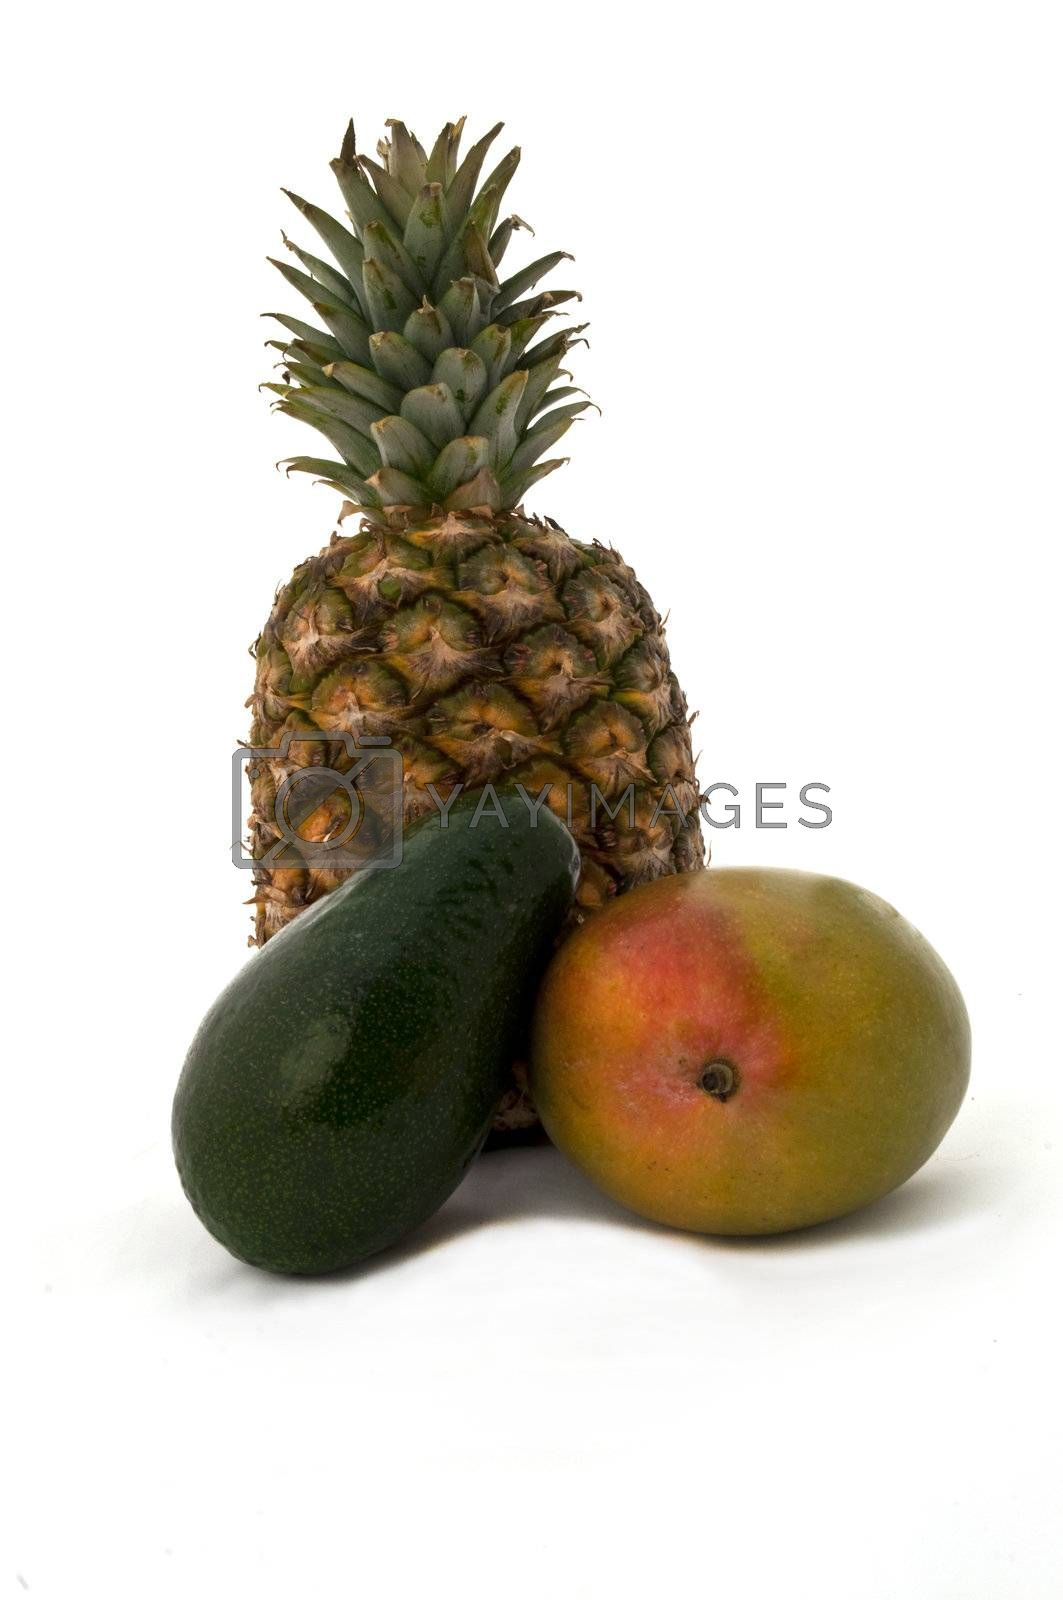 pineapple, mango, papaya together on a white background